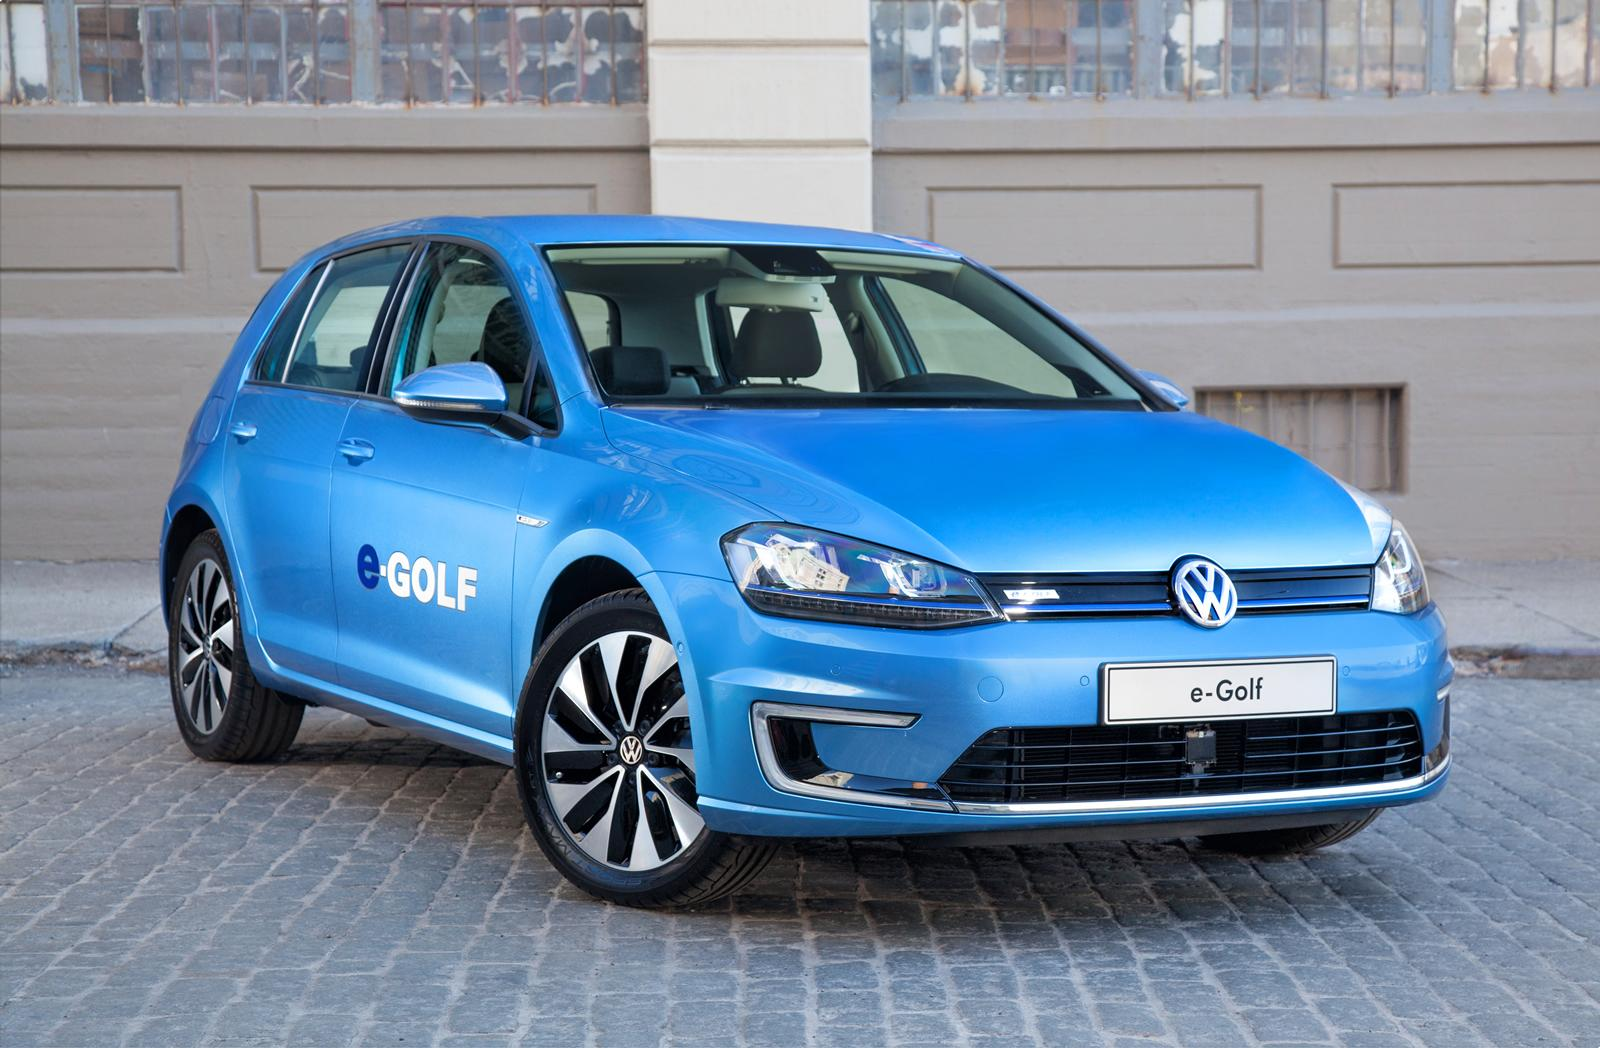 2015 e-Golf: the First Electric Volkswagen Coming to the ...